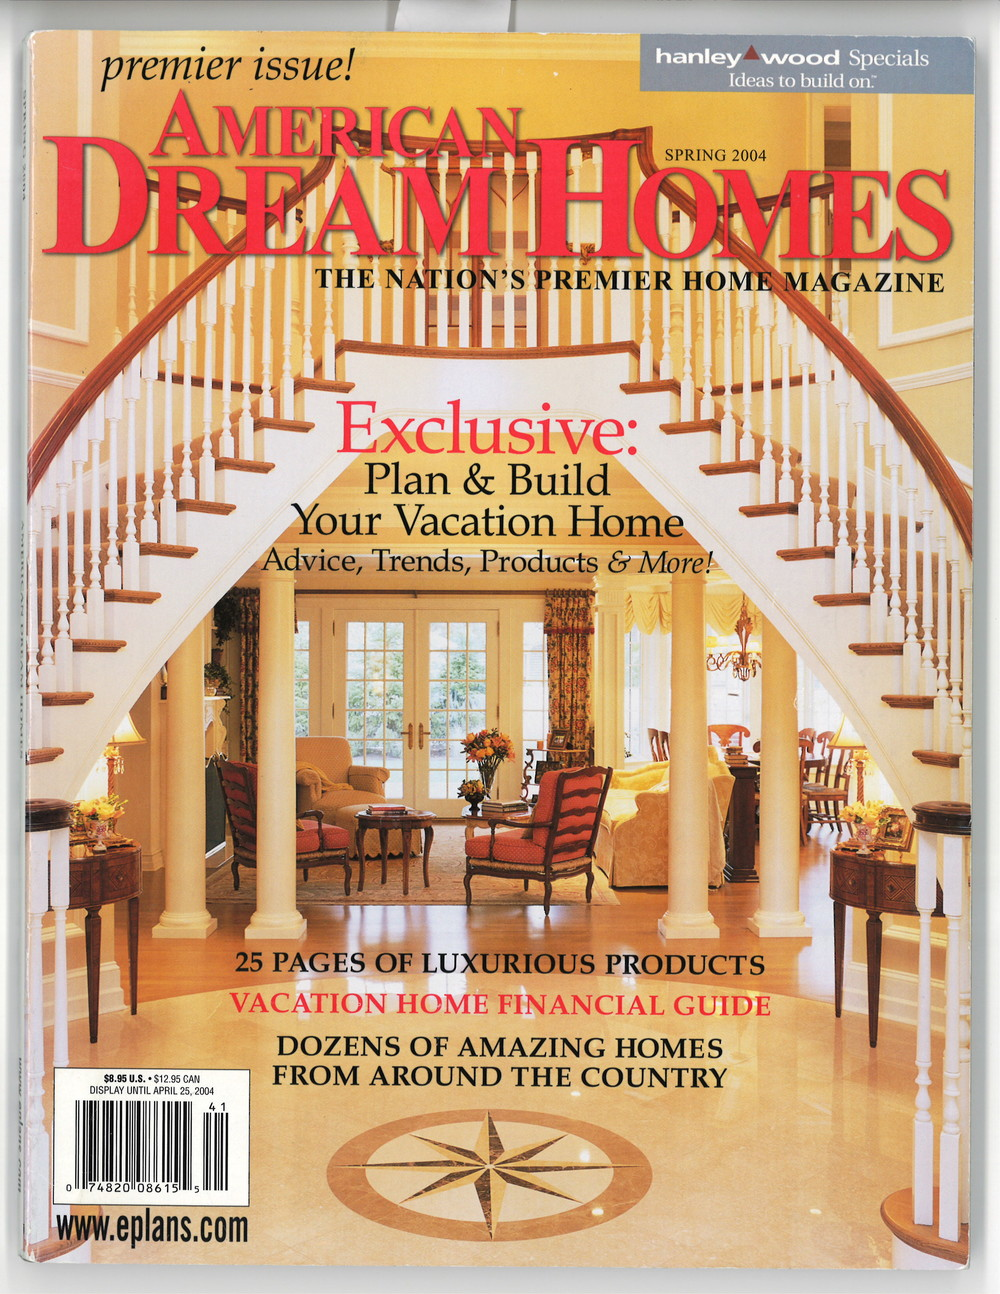 American Dream Homes - Spring 2004